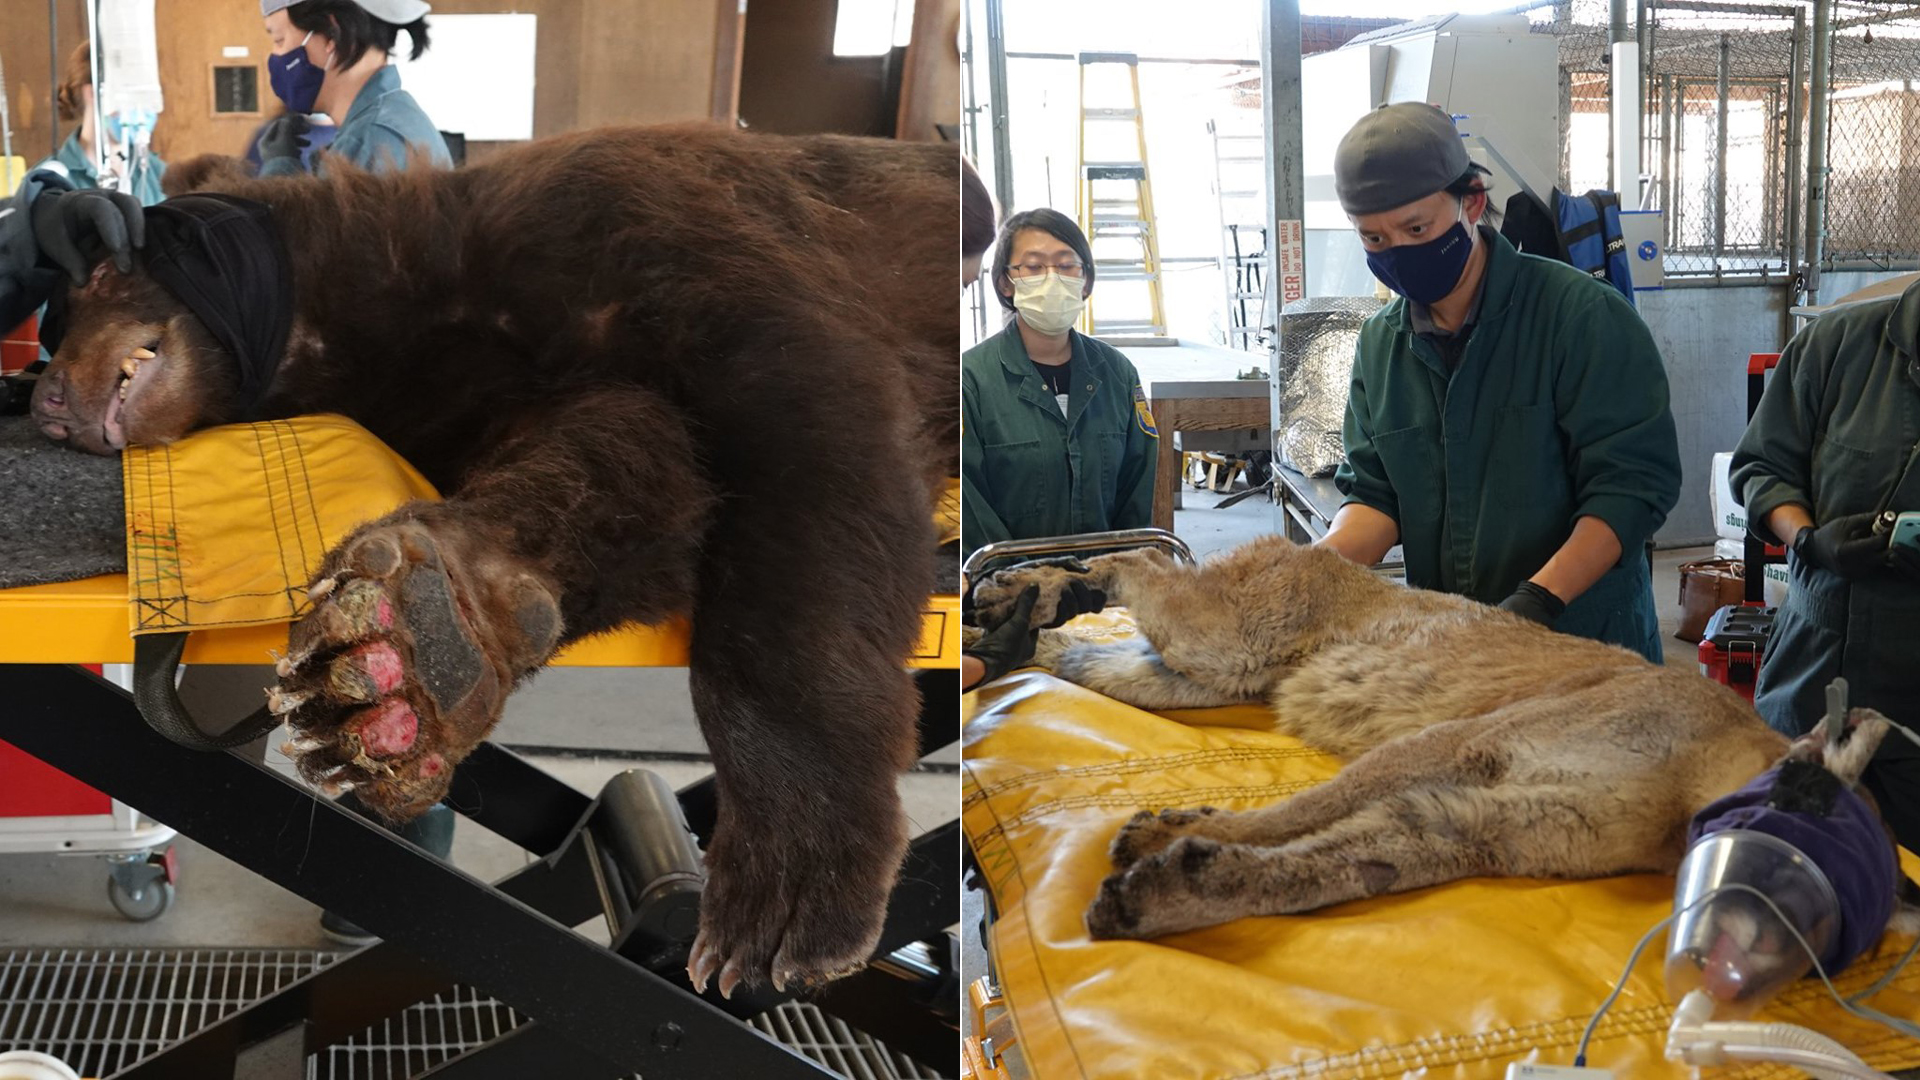 A bear and mountain lion injured in California wildfires are shown in photos released by the California Department of Fish and Wildlife on Oct. 5, 2020.